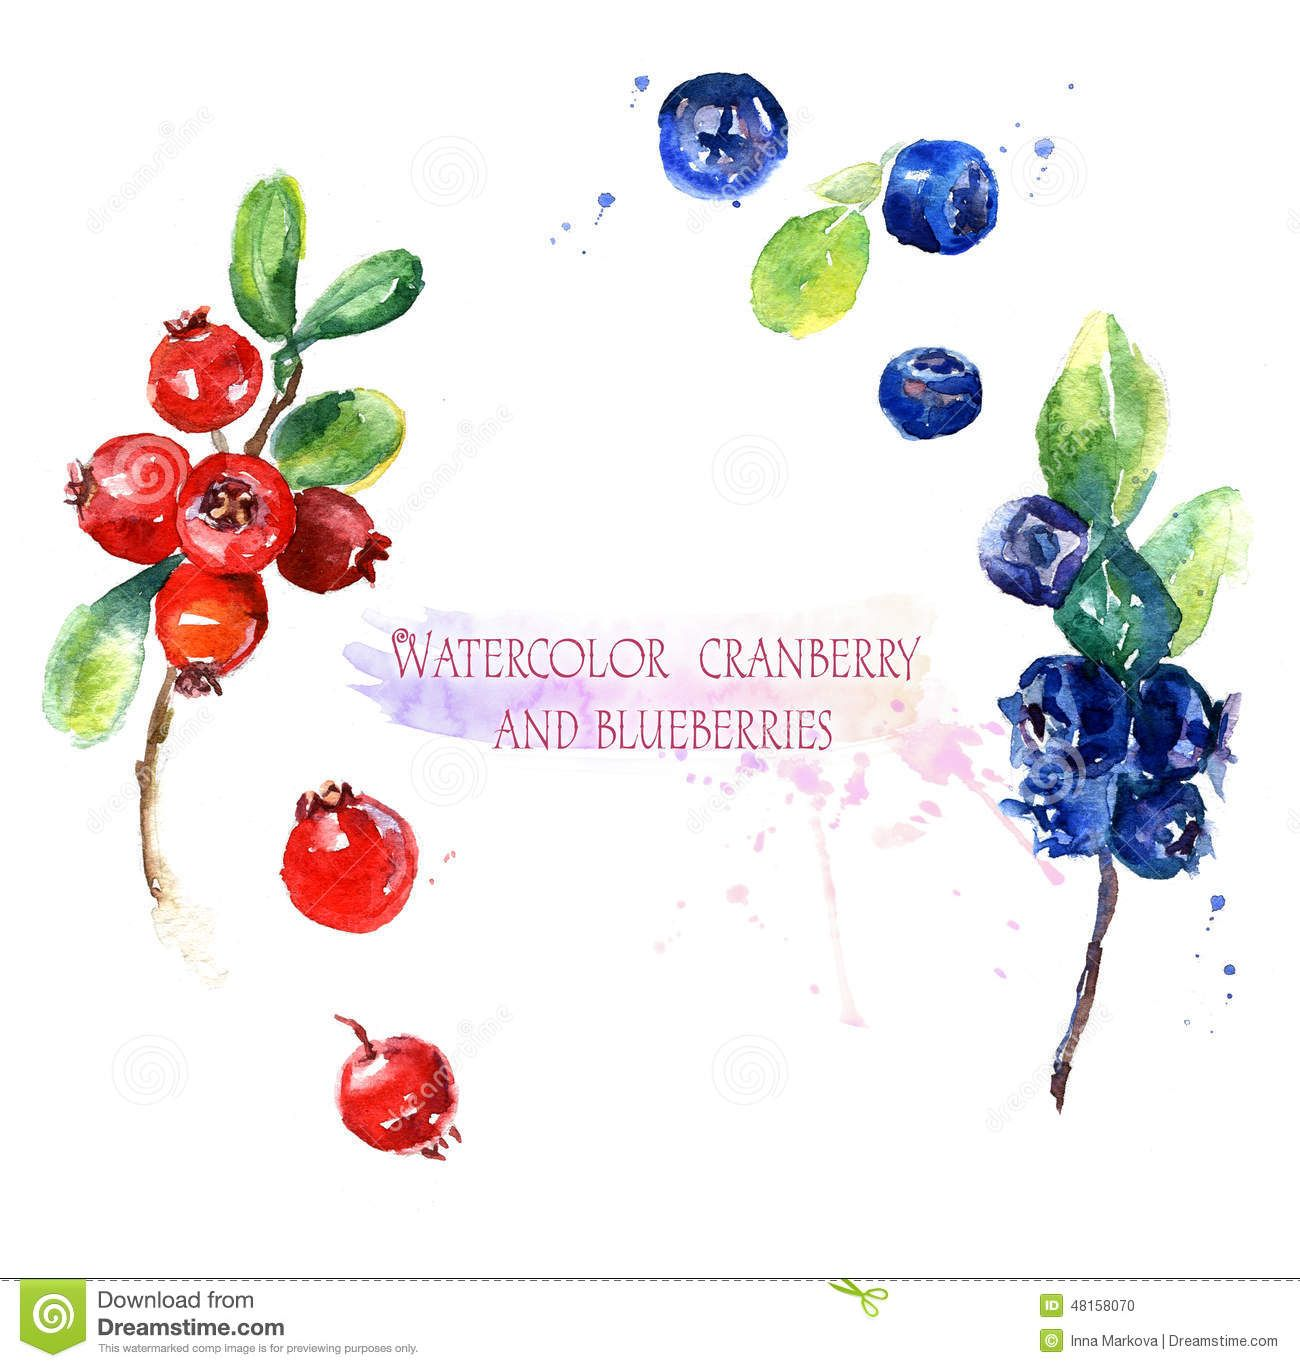 Watercolor illustration and blueberries. Blueberry clipart cranberry